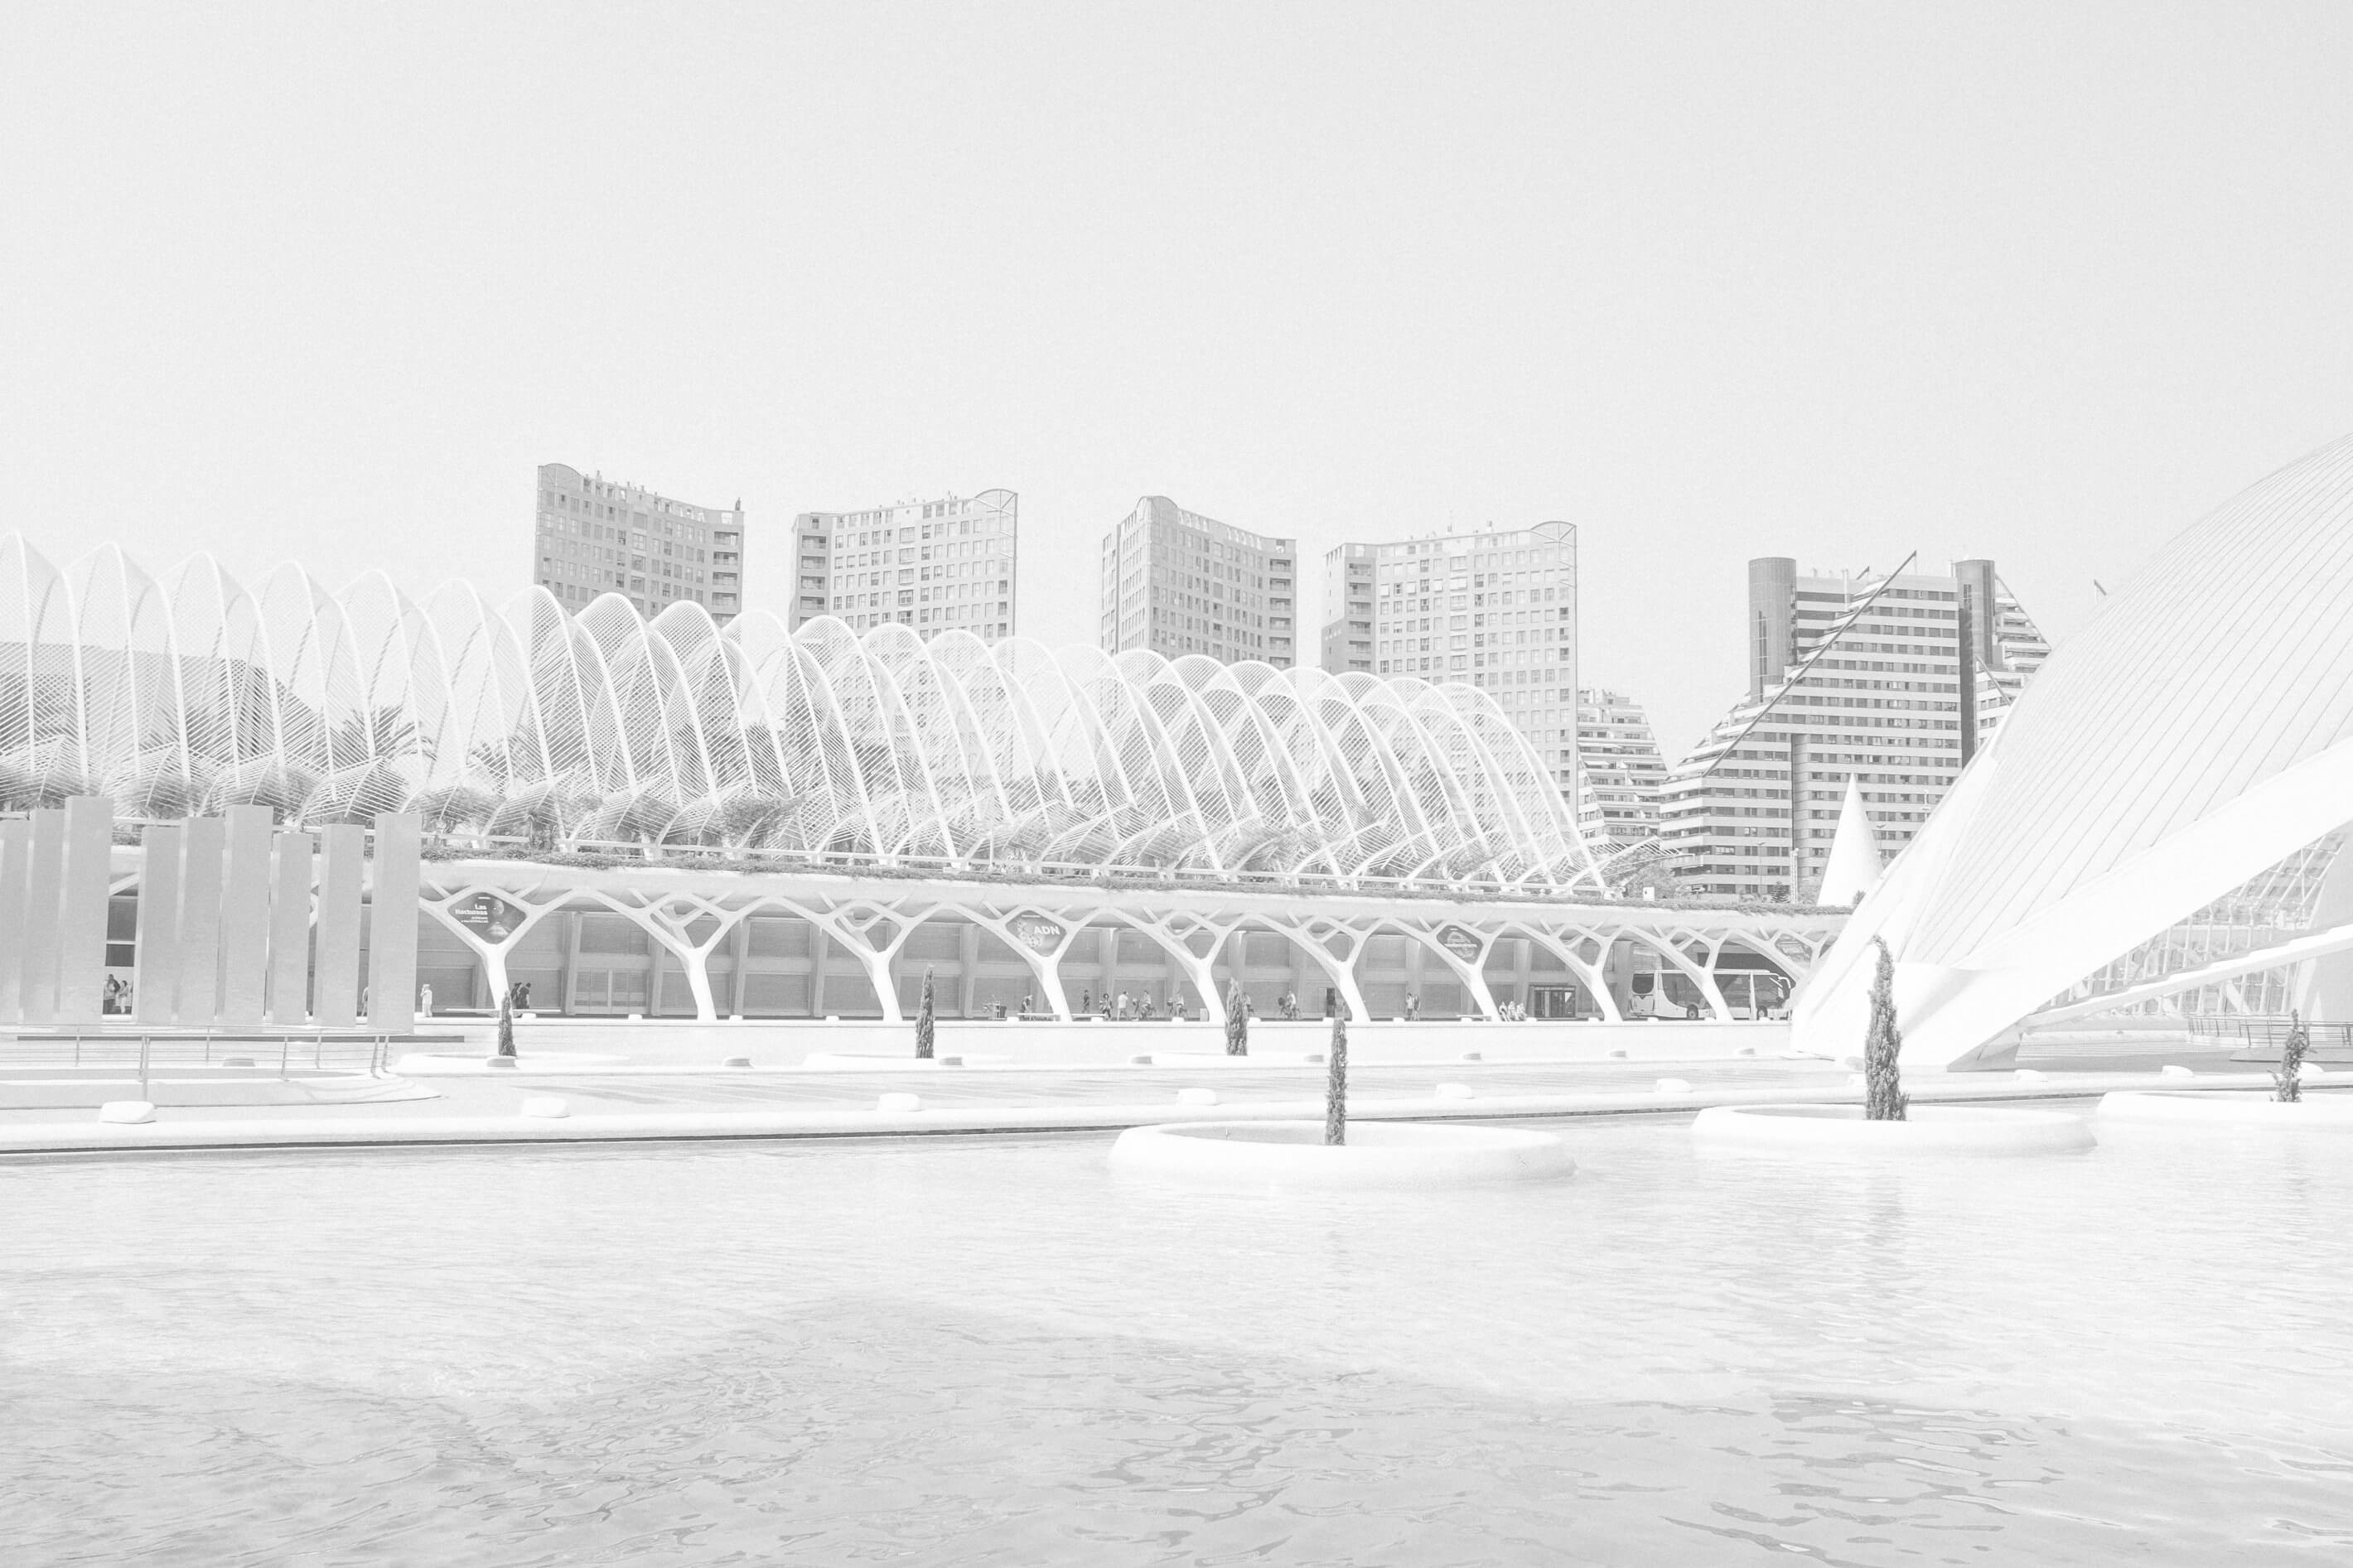 160828_valencia_whiteout_1362